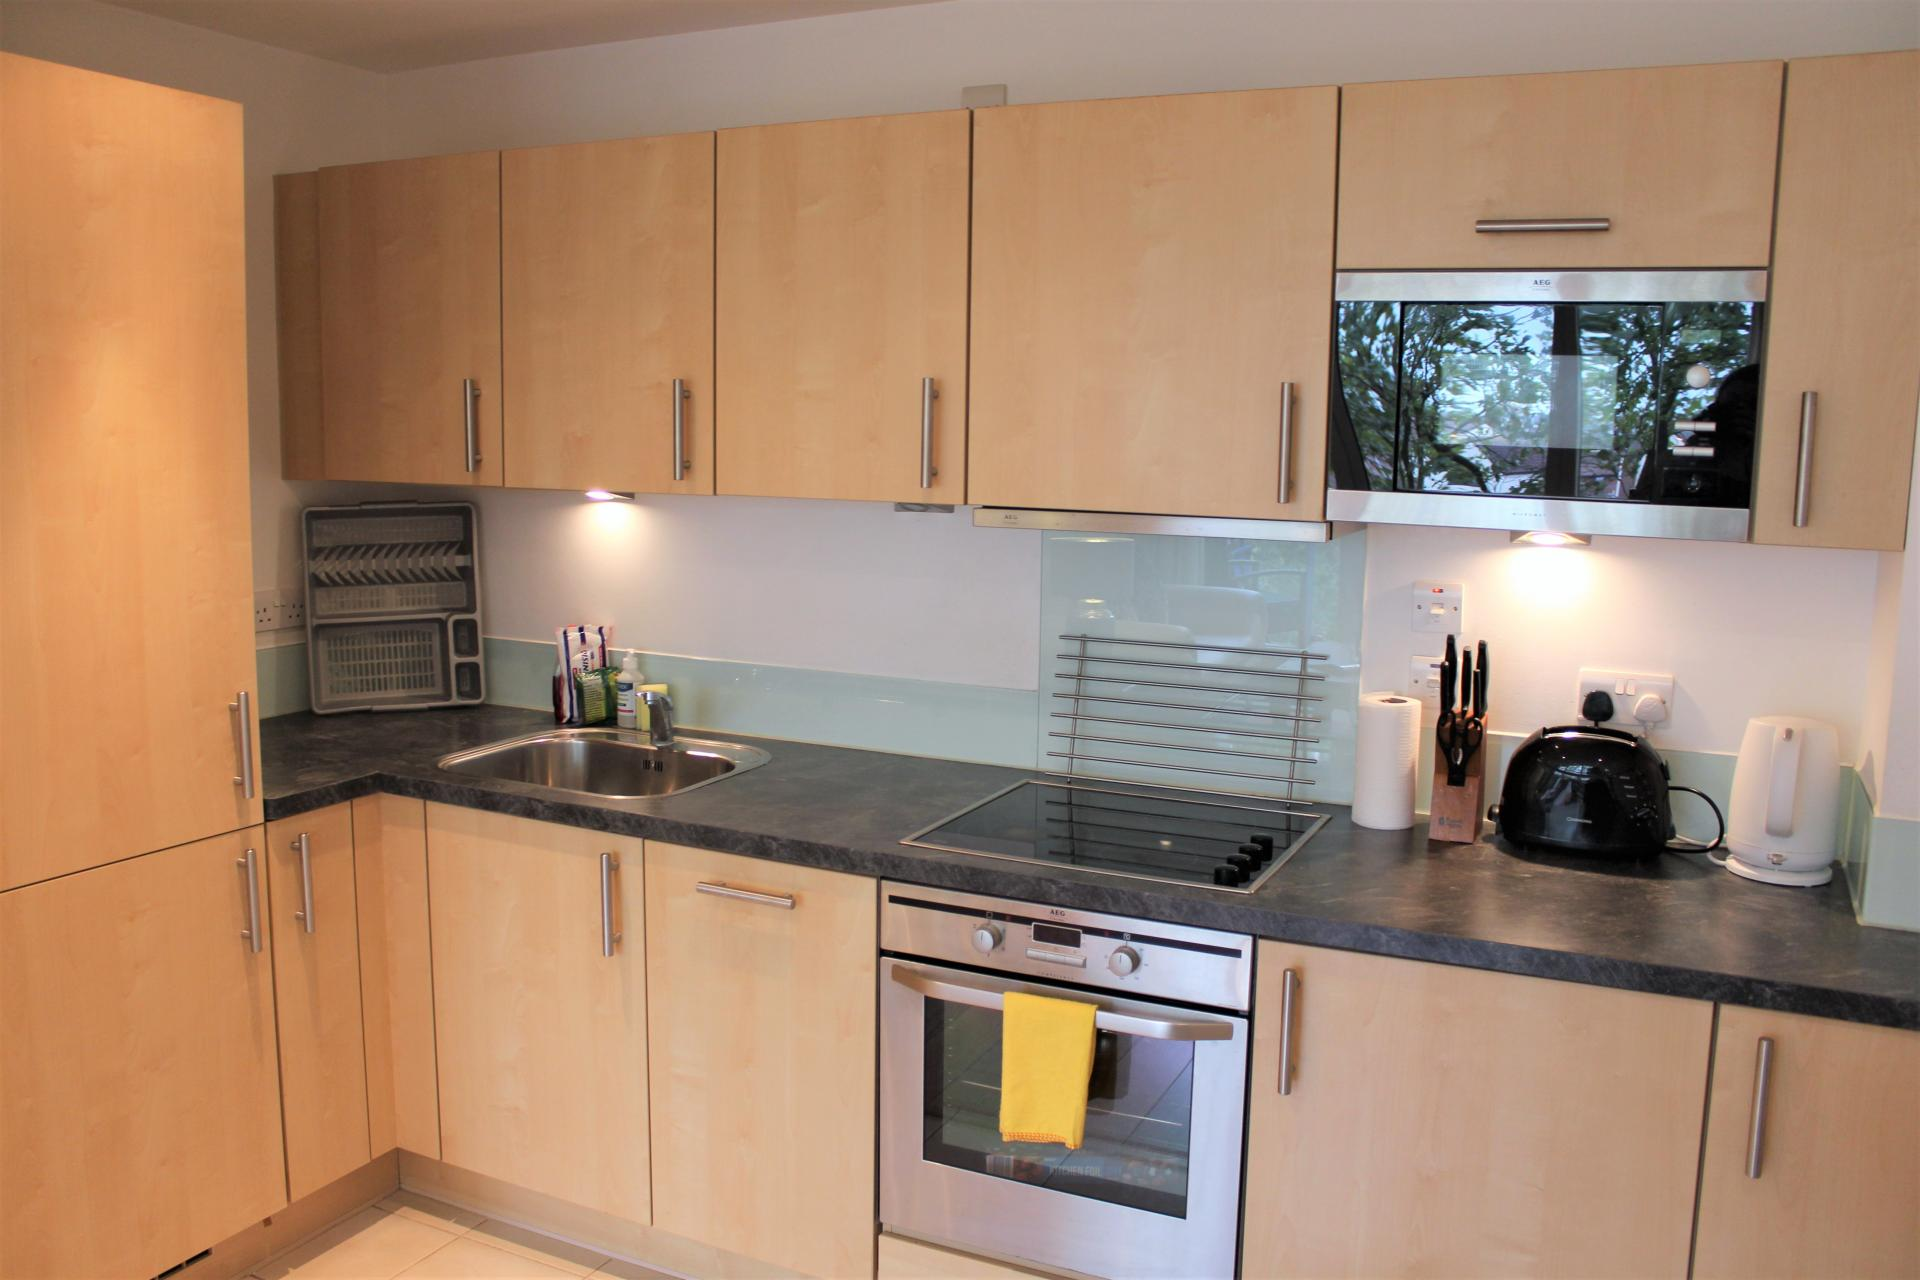 Fully equipped kitchen at Gunwharf Quays Apartments, Gunwharf Quays, Portsmouth - Citybase Apartments